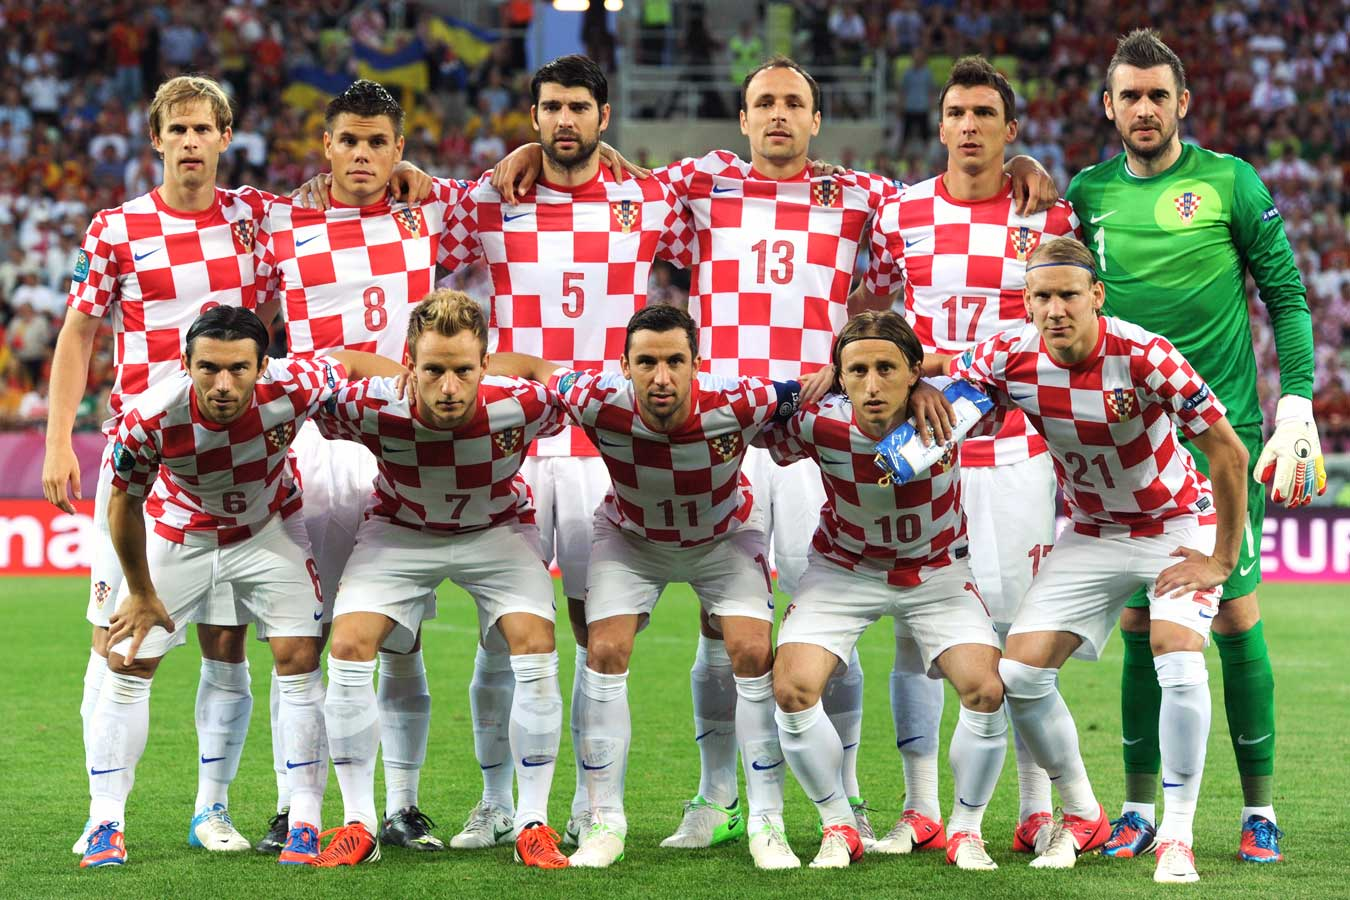 IMG CROATIA Football team